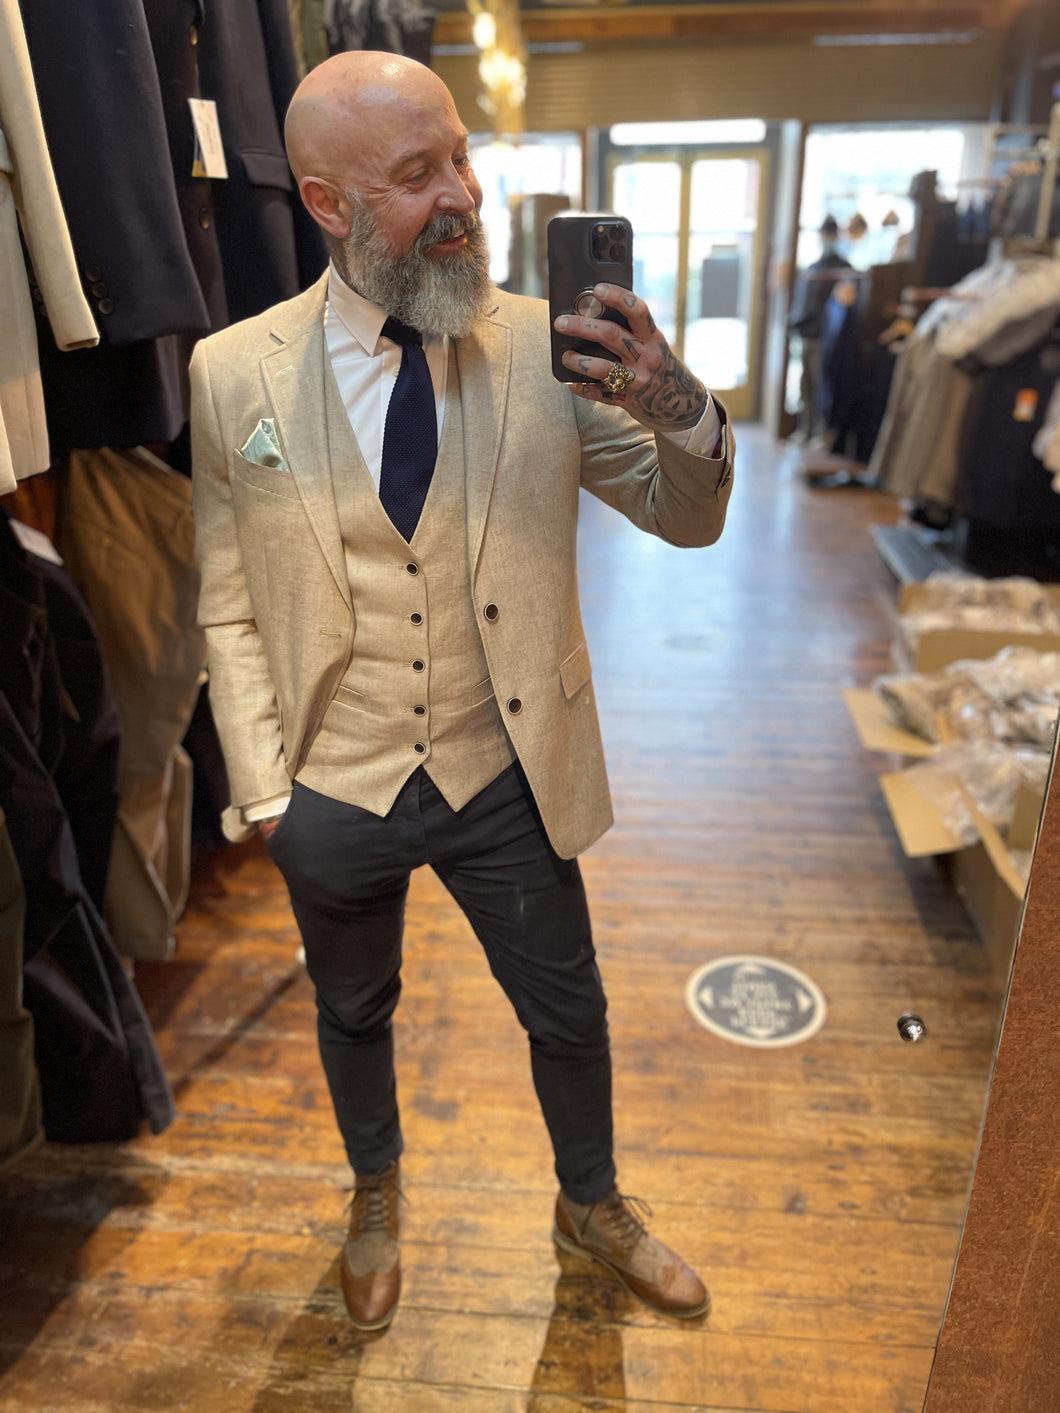 Stone Blazer & Waistcoat With Navy Chinos Look skopes-lagasse-stone-linen-blazer / skopes-lagasse-stone-linen-waistcoat / skopes-plain-white-tailored-fit-shirt